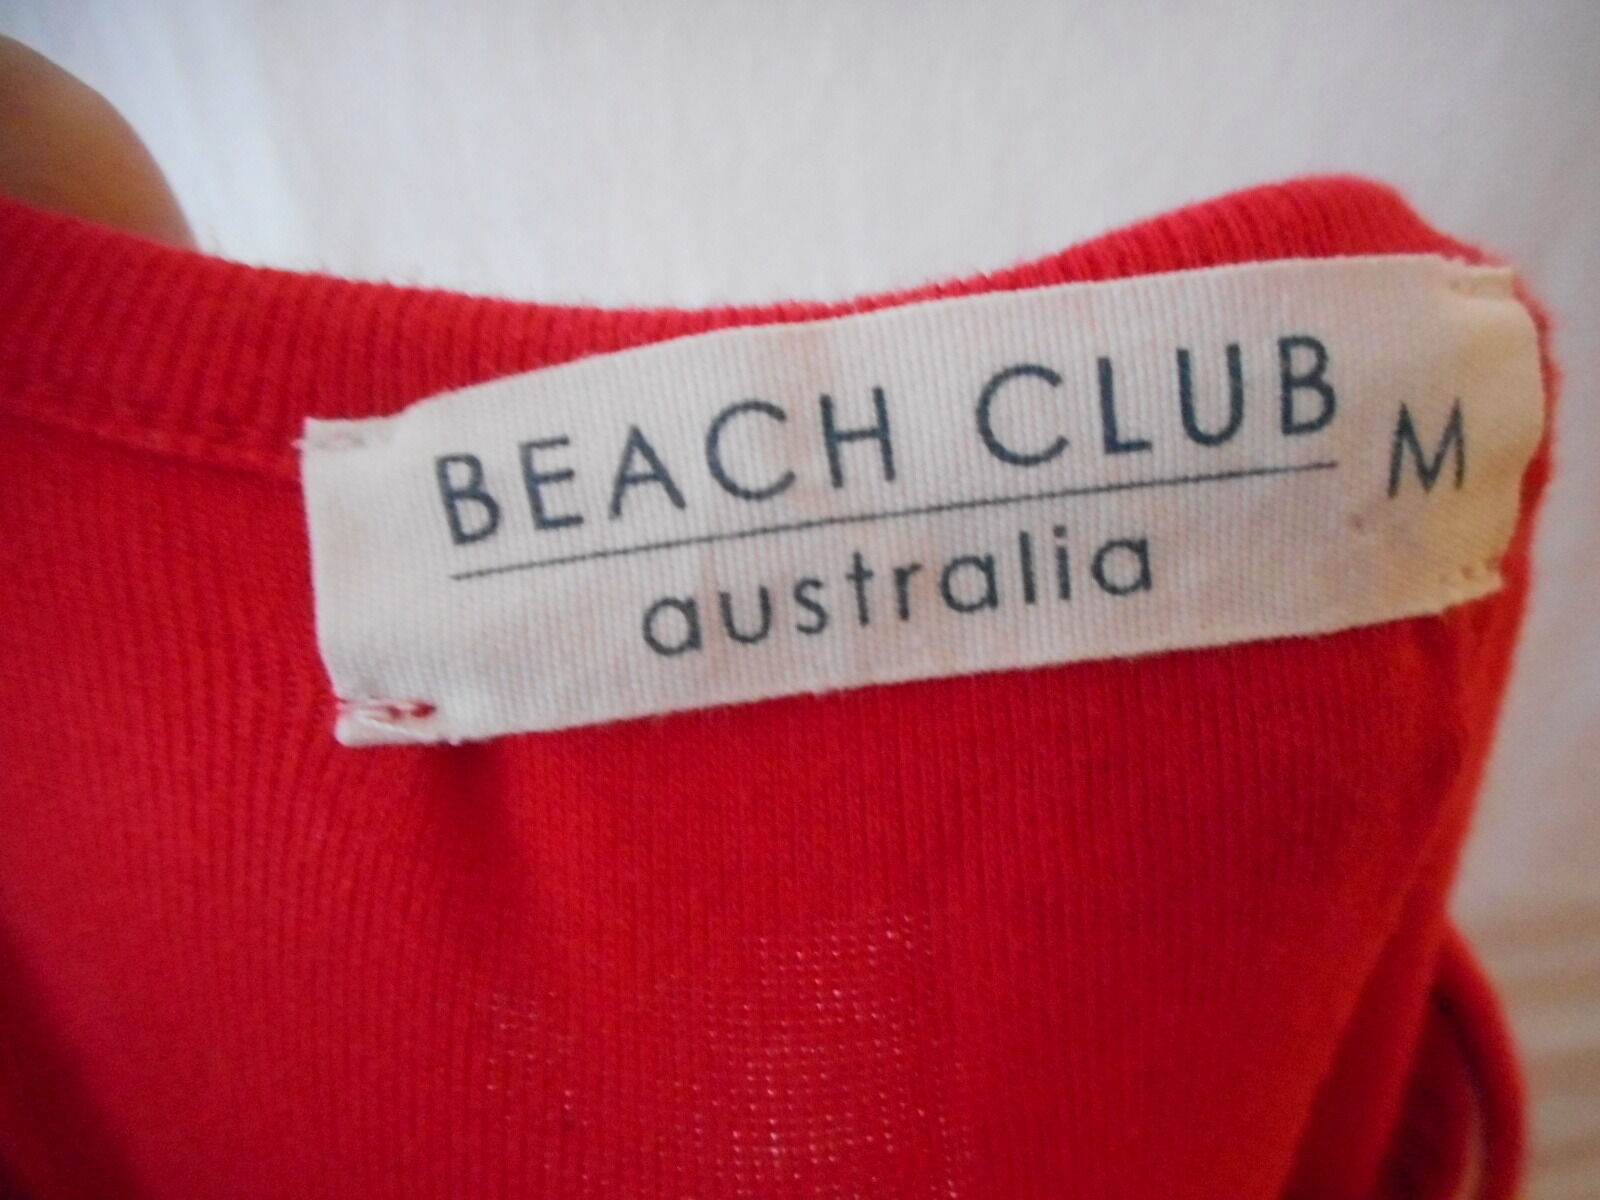 Beach Club Australia Knit top Striped Red White  Size M